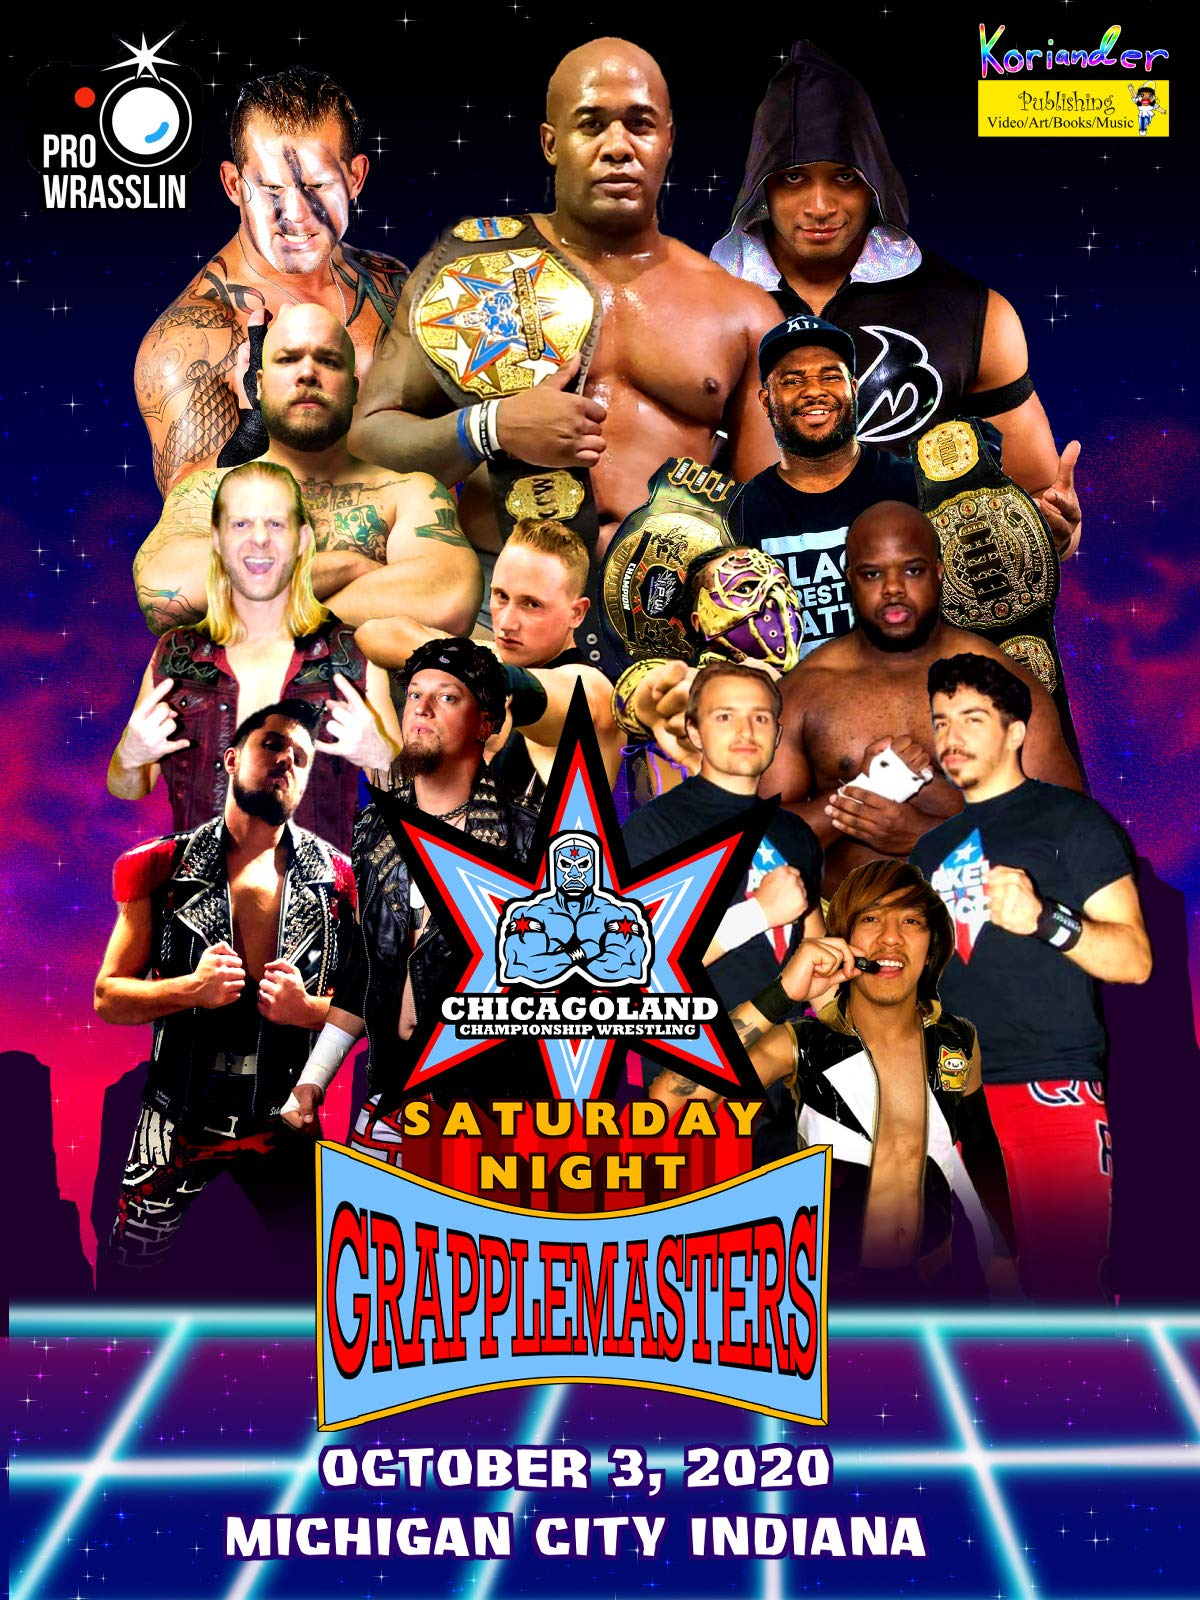 Chicagoland Championship Wrestling: Saturday Night Grapplemasters